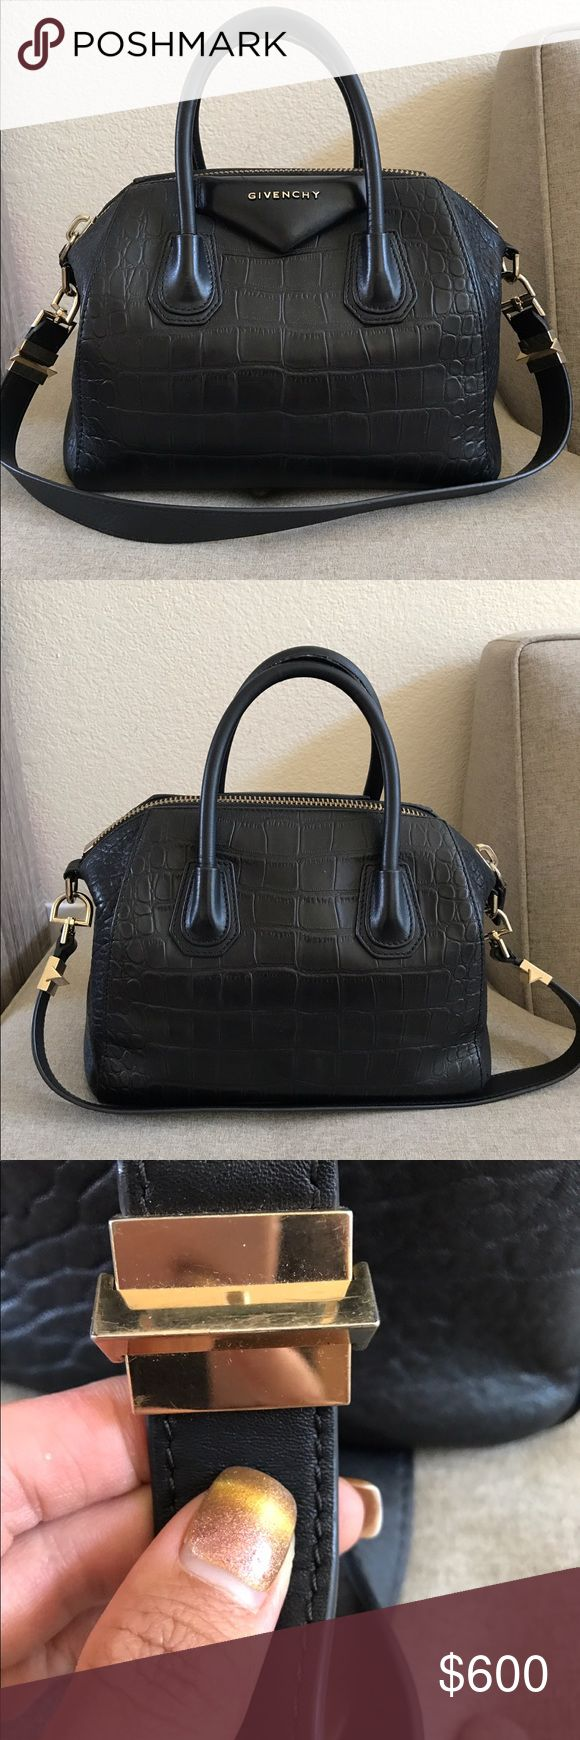 Authentic givenchy Antigona pm black crocodile Authentic givenchy Antigona pm black crocodile in fair condition. It shows some wear on the handle. Interior shows some dust. The corners shows some rubbing. One of the corners shows some tear.  It doesn't come with the dustbag nor box. Givenchy Bags Satchels